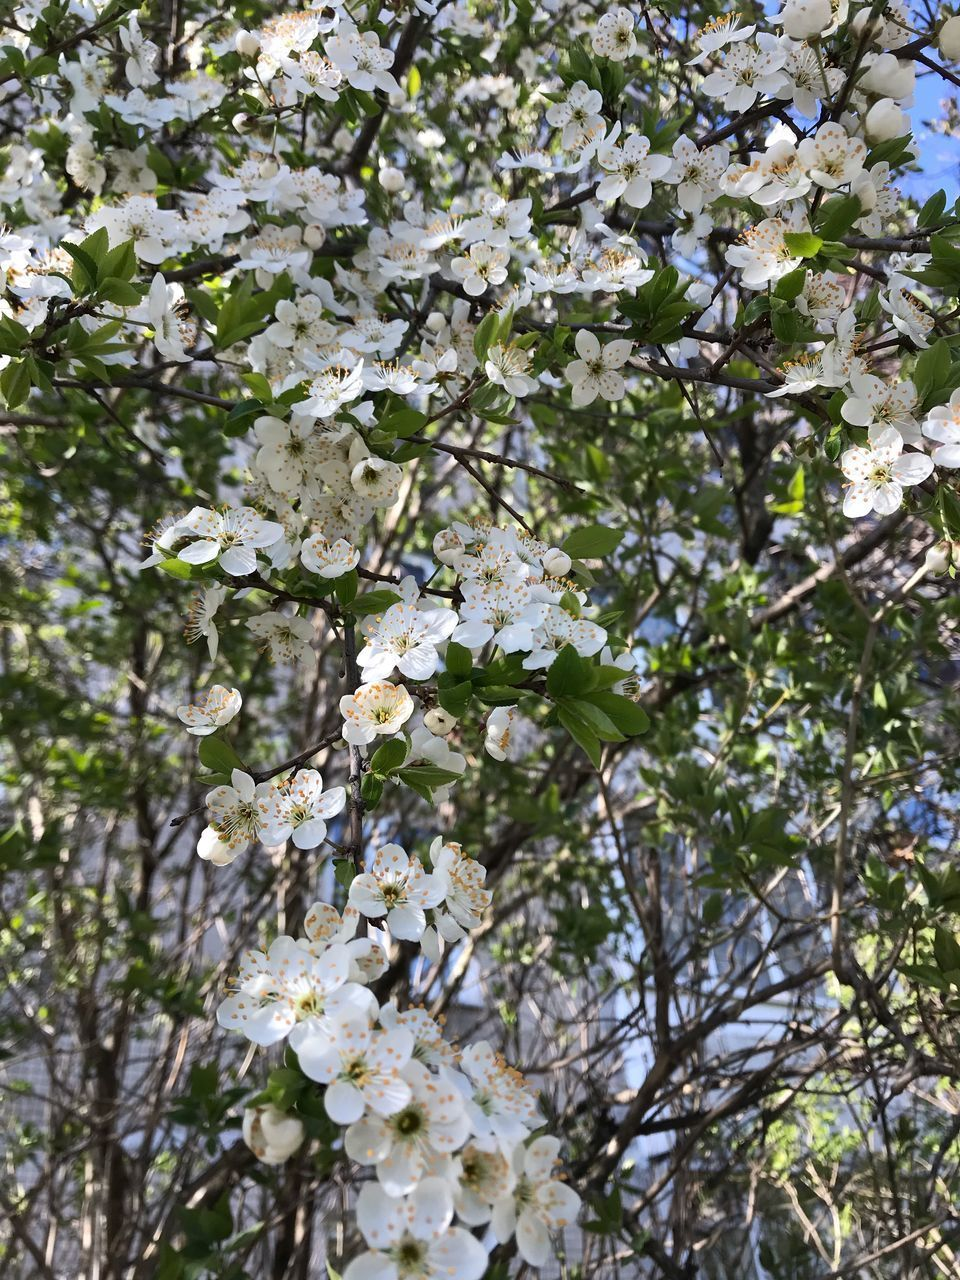 LOW ANGLE VIEW OF WHITE FLOWERING TREE IN SPRING